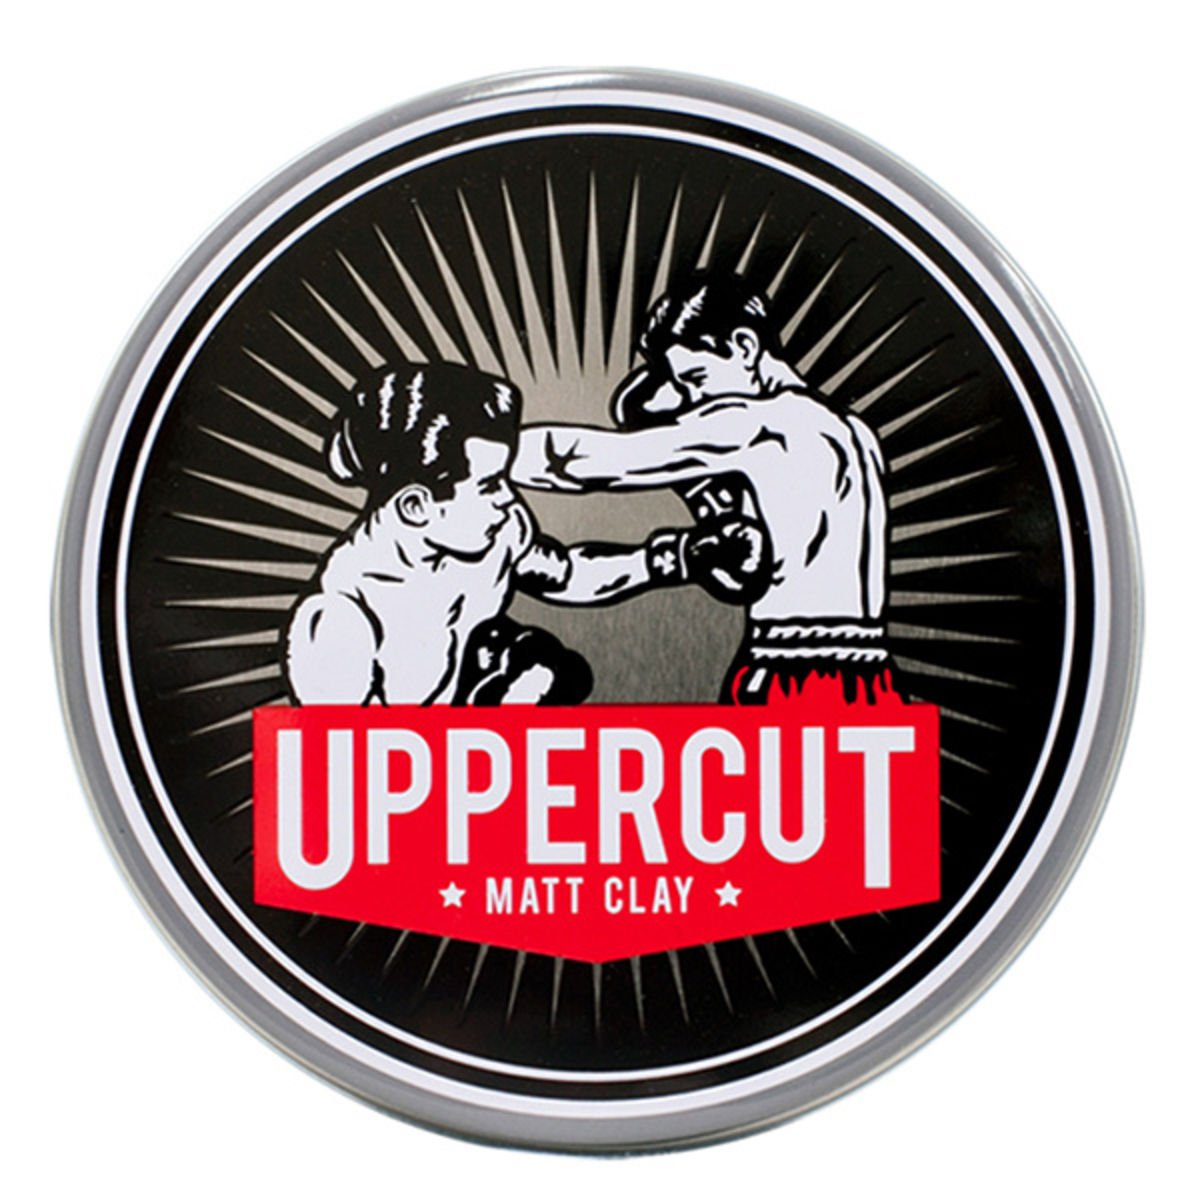 Uppercut Deluxe Matt Clay 2.1oz Uppercut Barber Supplies UCMC